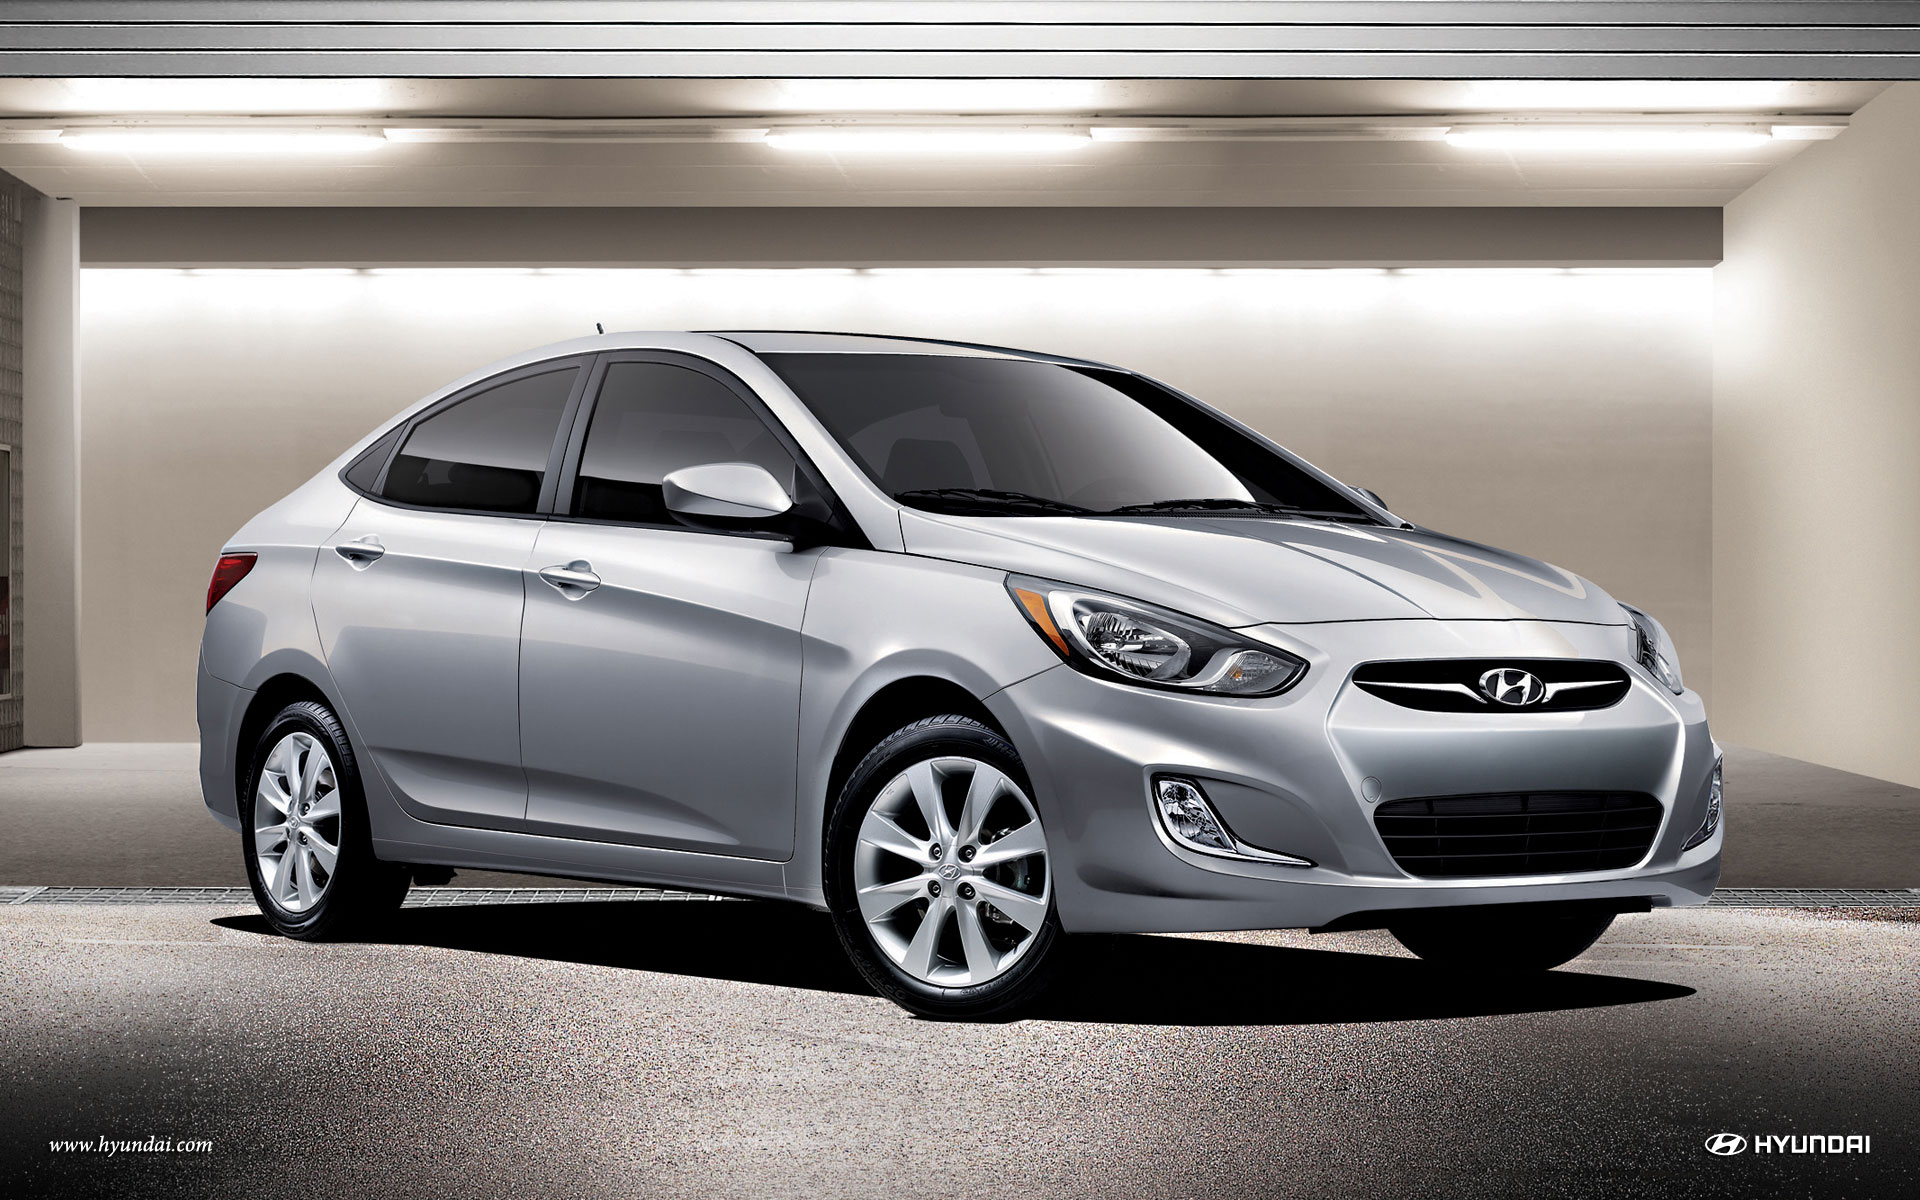 320402 Hyundai Accent Wallpapers 1920x1200